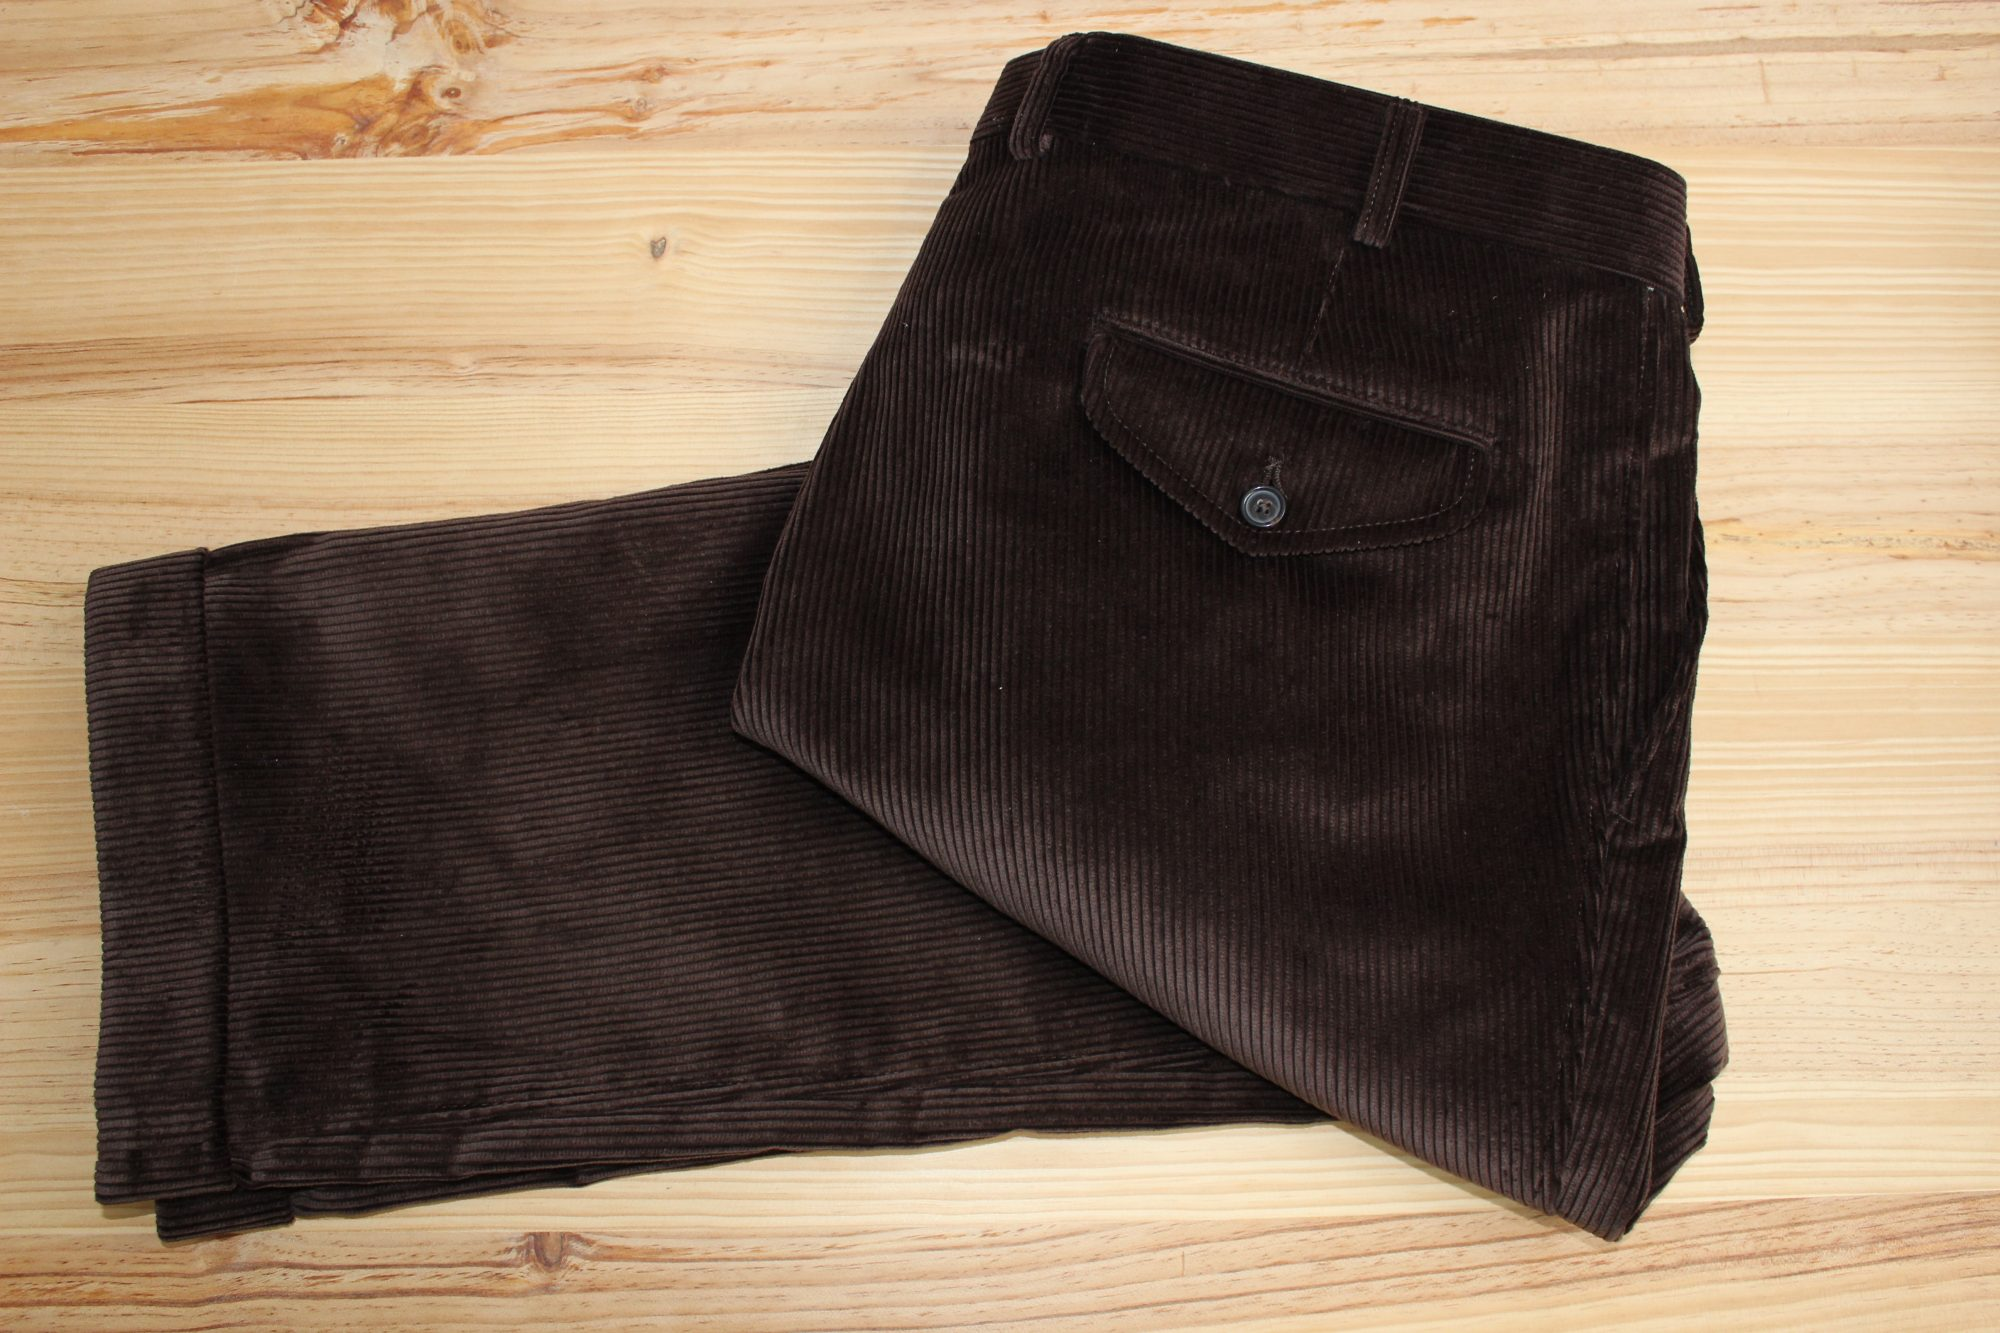 pantalon velours côtelé marron sur mesure , pantalon velours côtelé , pantalon casual sur mesure , pantalon marron